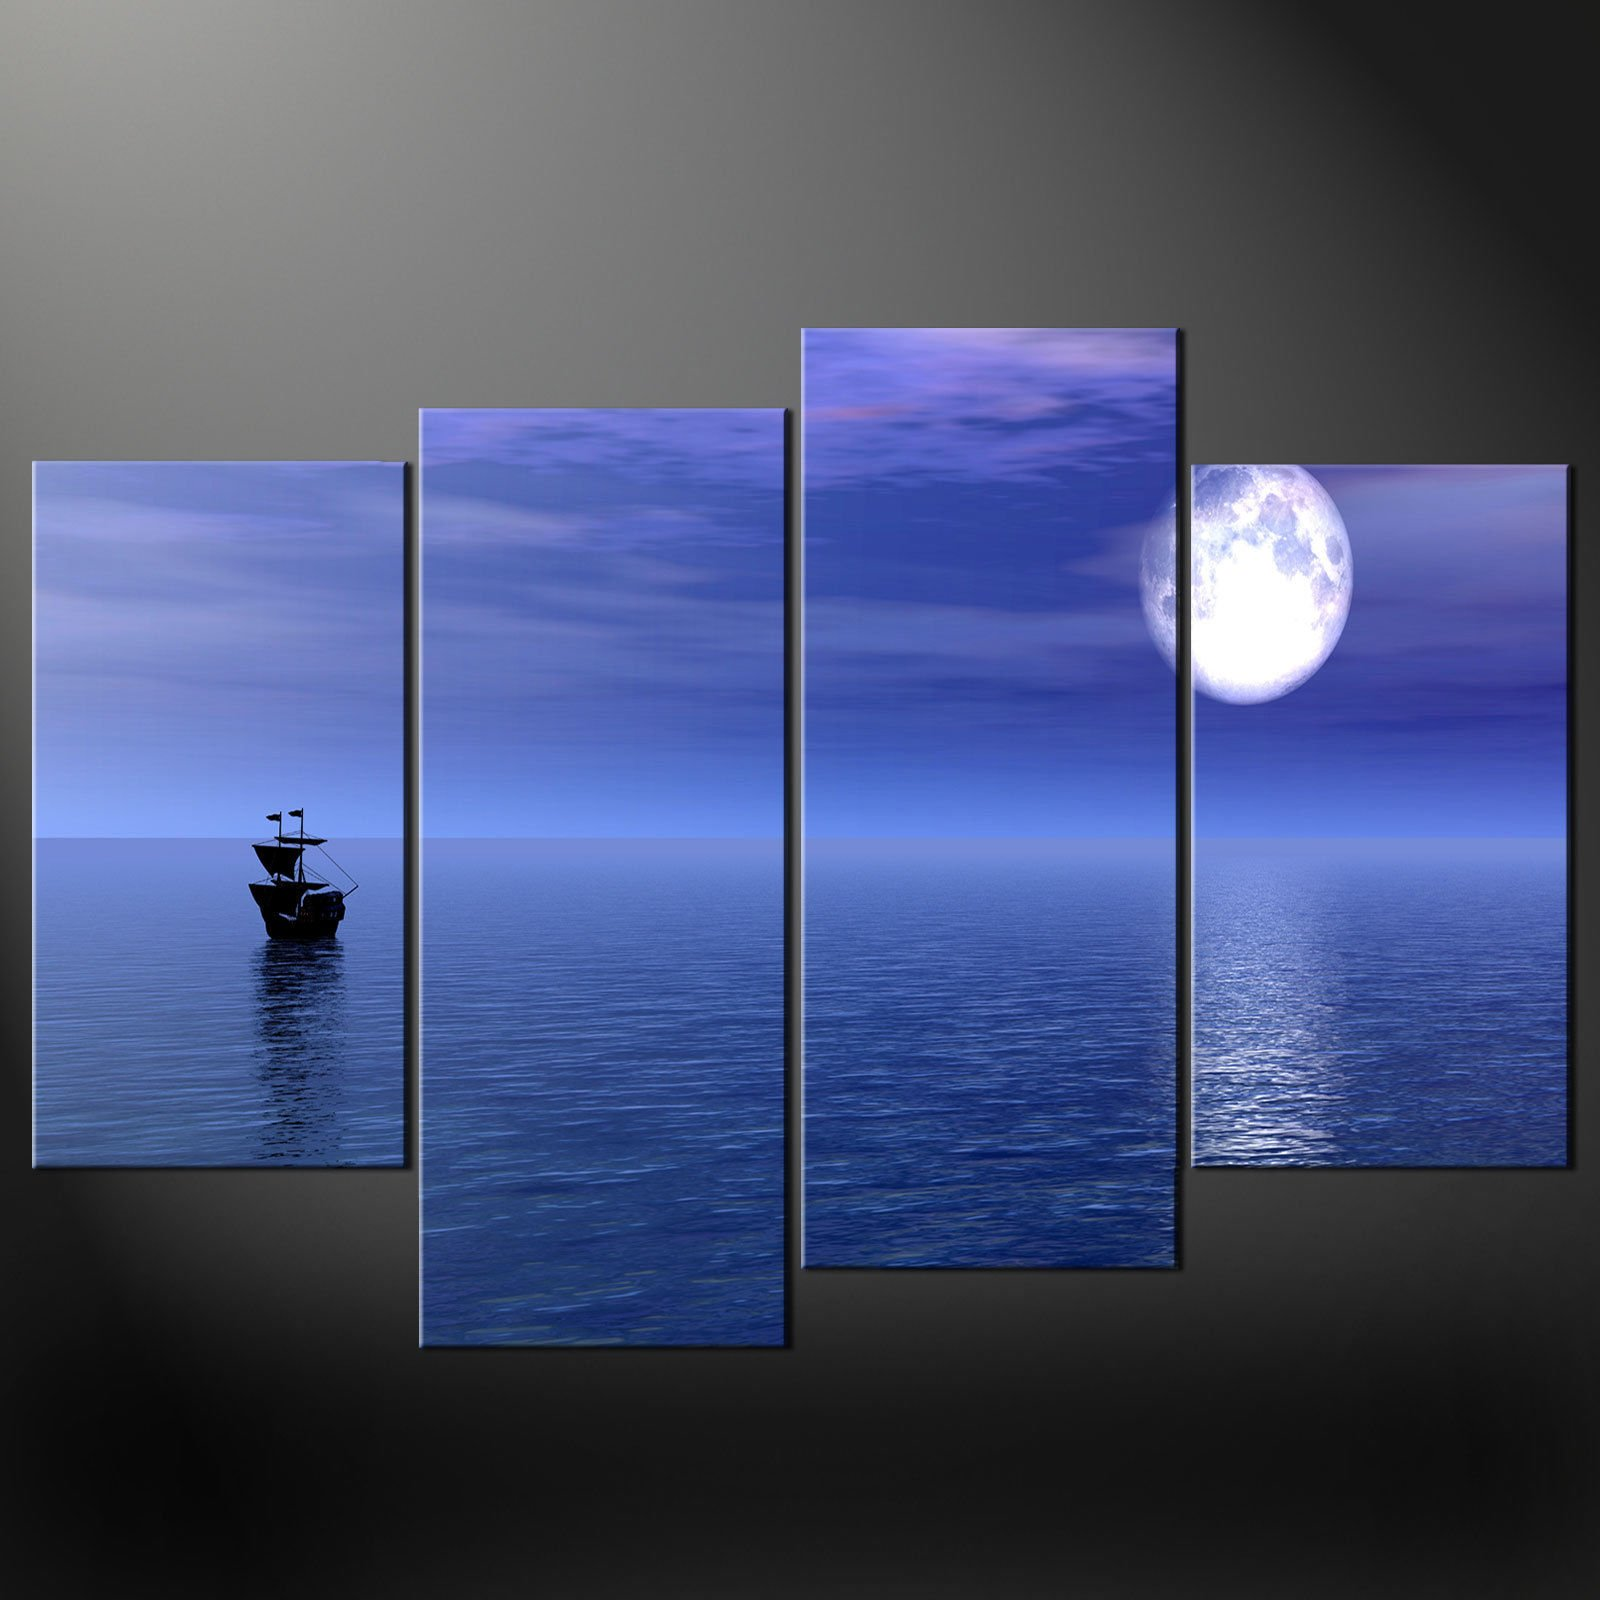 BLUE-SEA-SHIP-CANVAS-WALL-ART-PICTURES-PRINTS-LARGER-SIZES-AVAILABLE